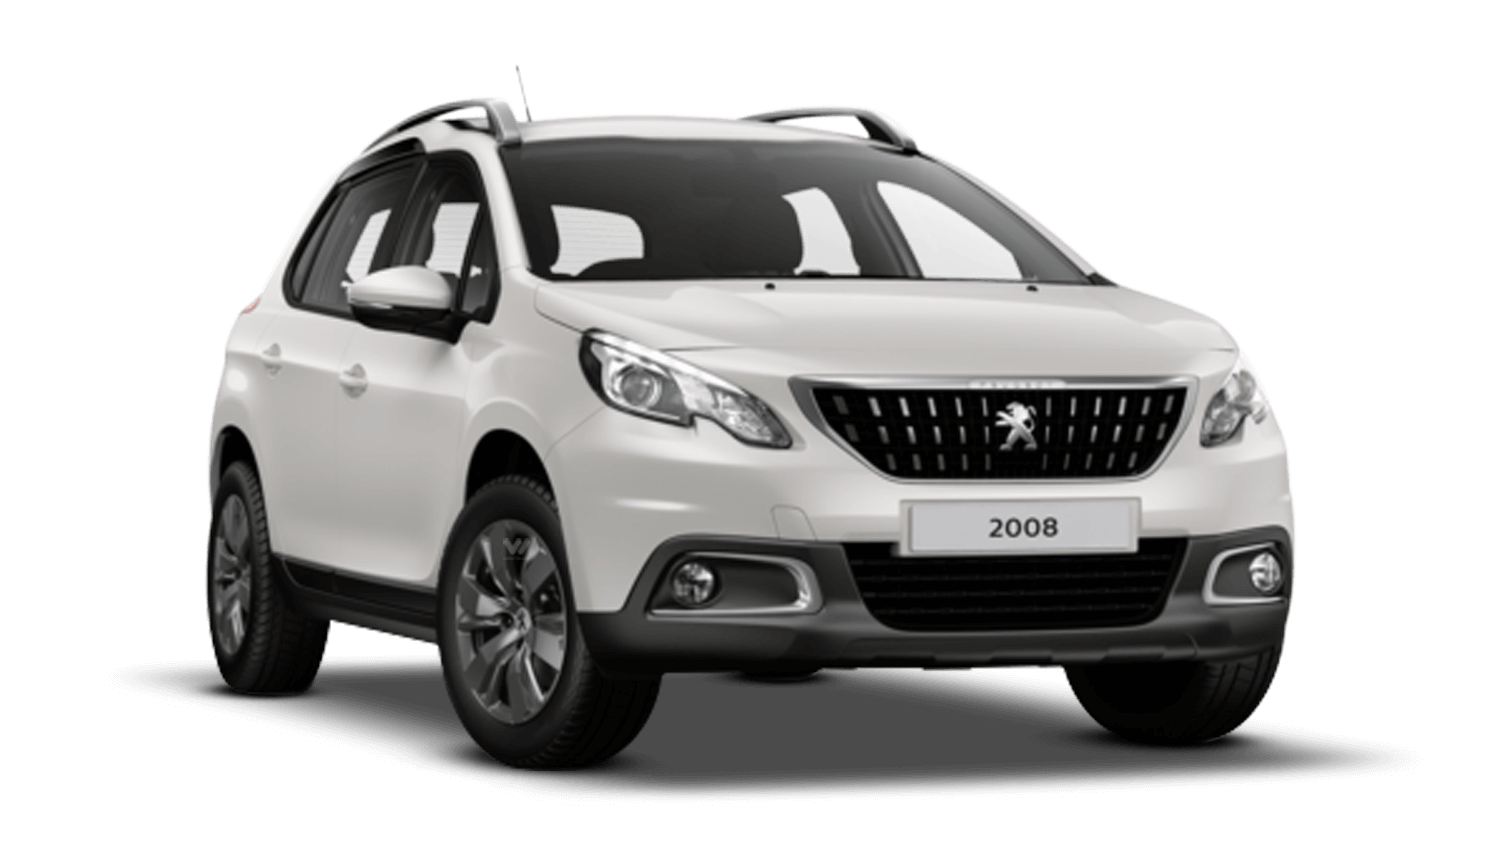 Pearlescent White Peugeot 2008 Suv